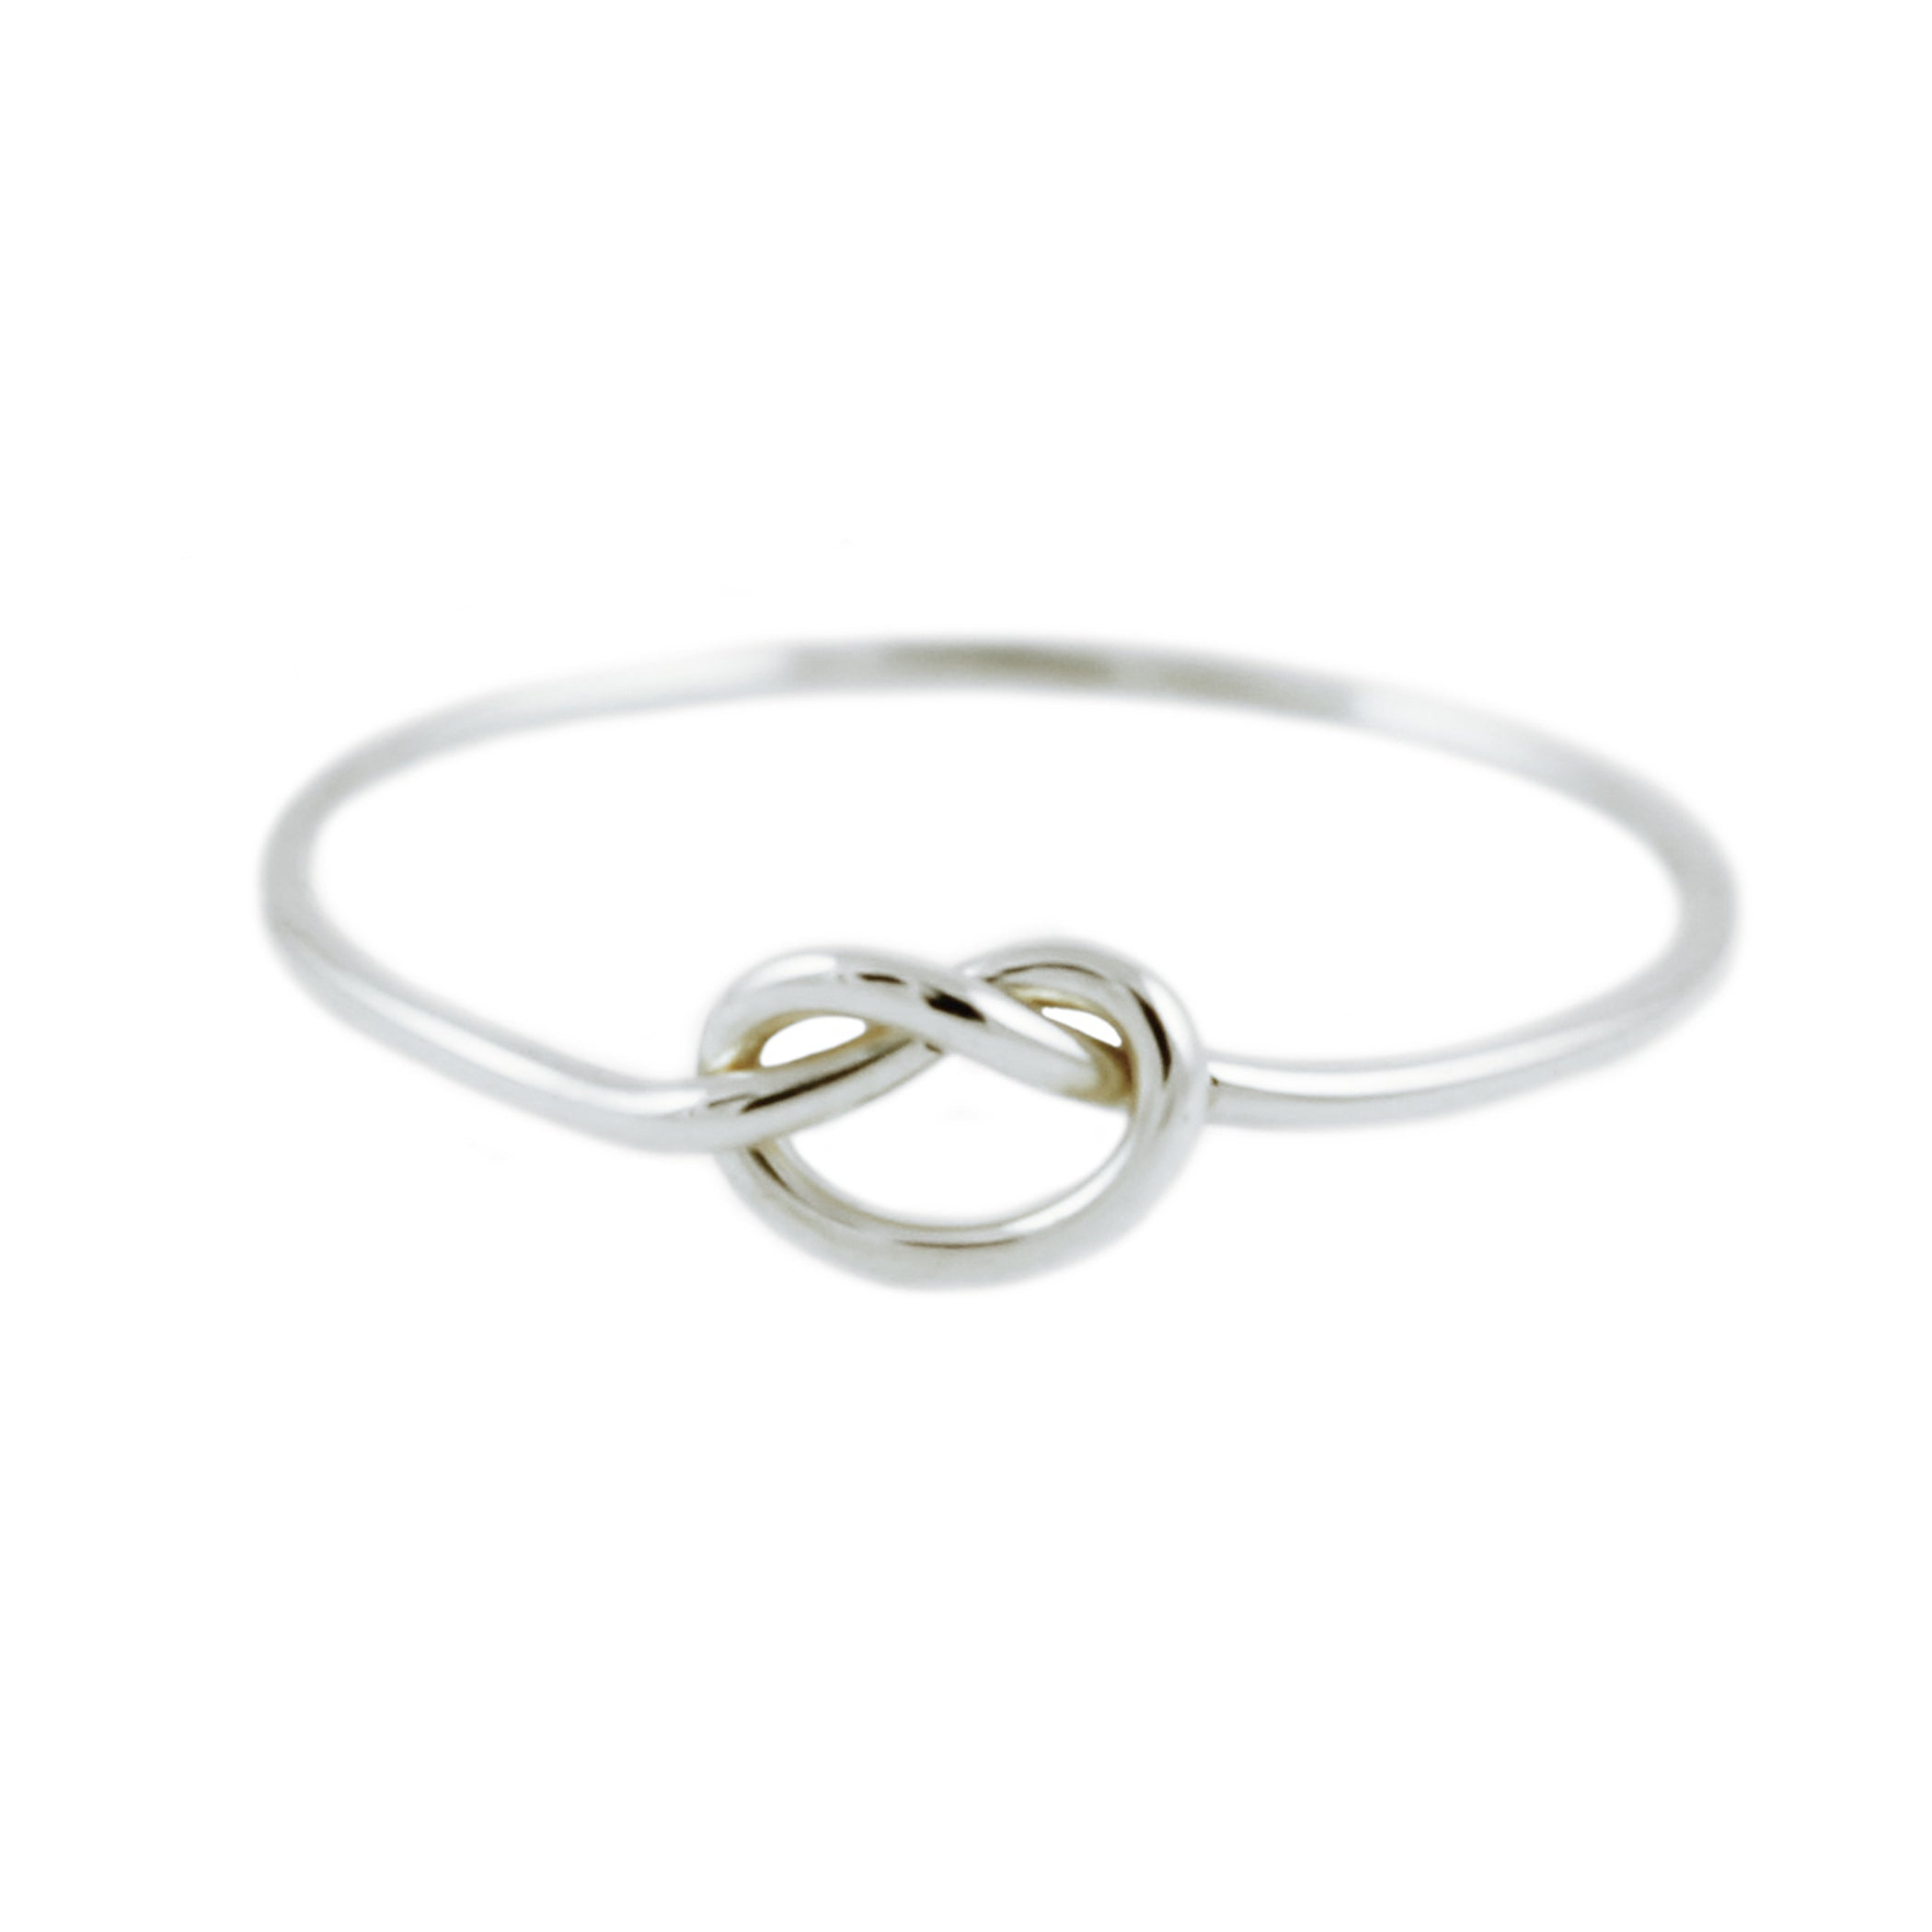 free cambridge love knot today product diamond silver overstock tdw jewelry shipping sterling ring watches infinity